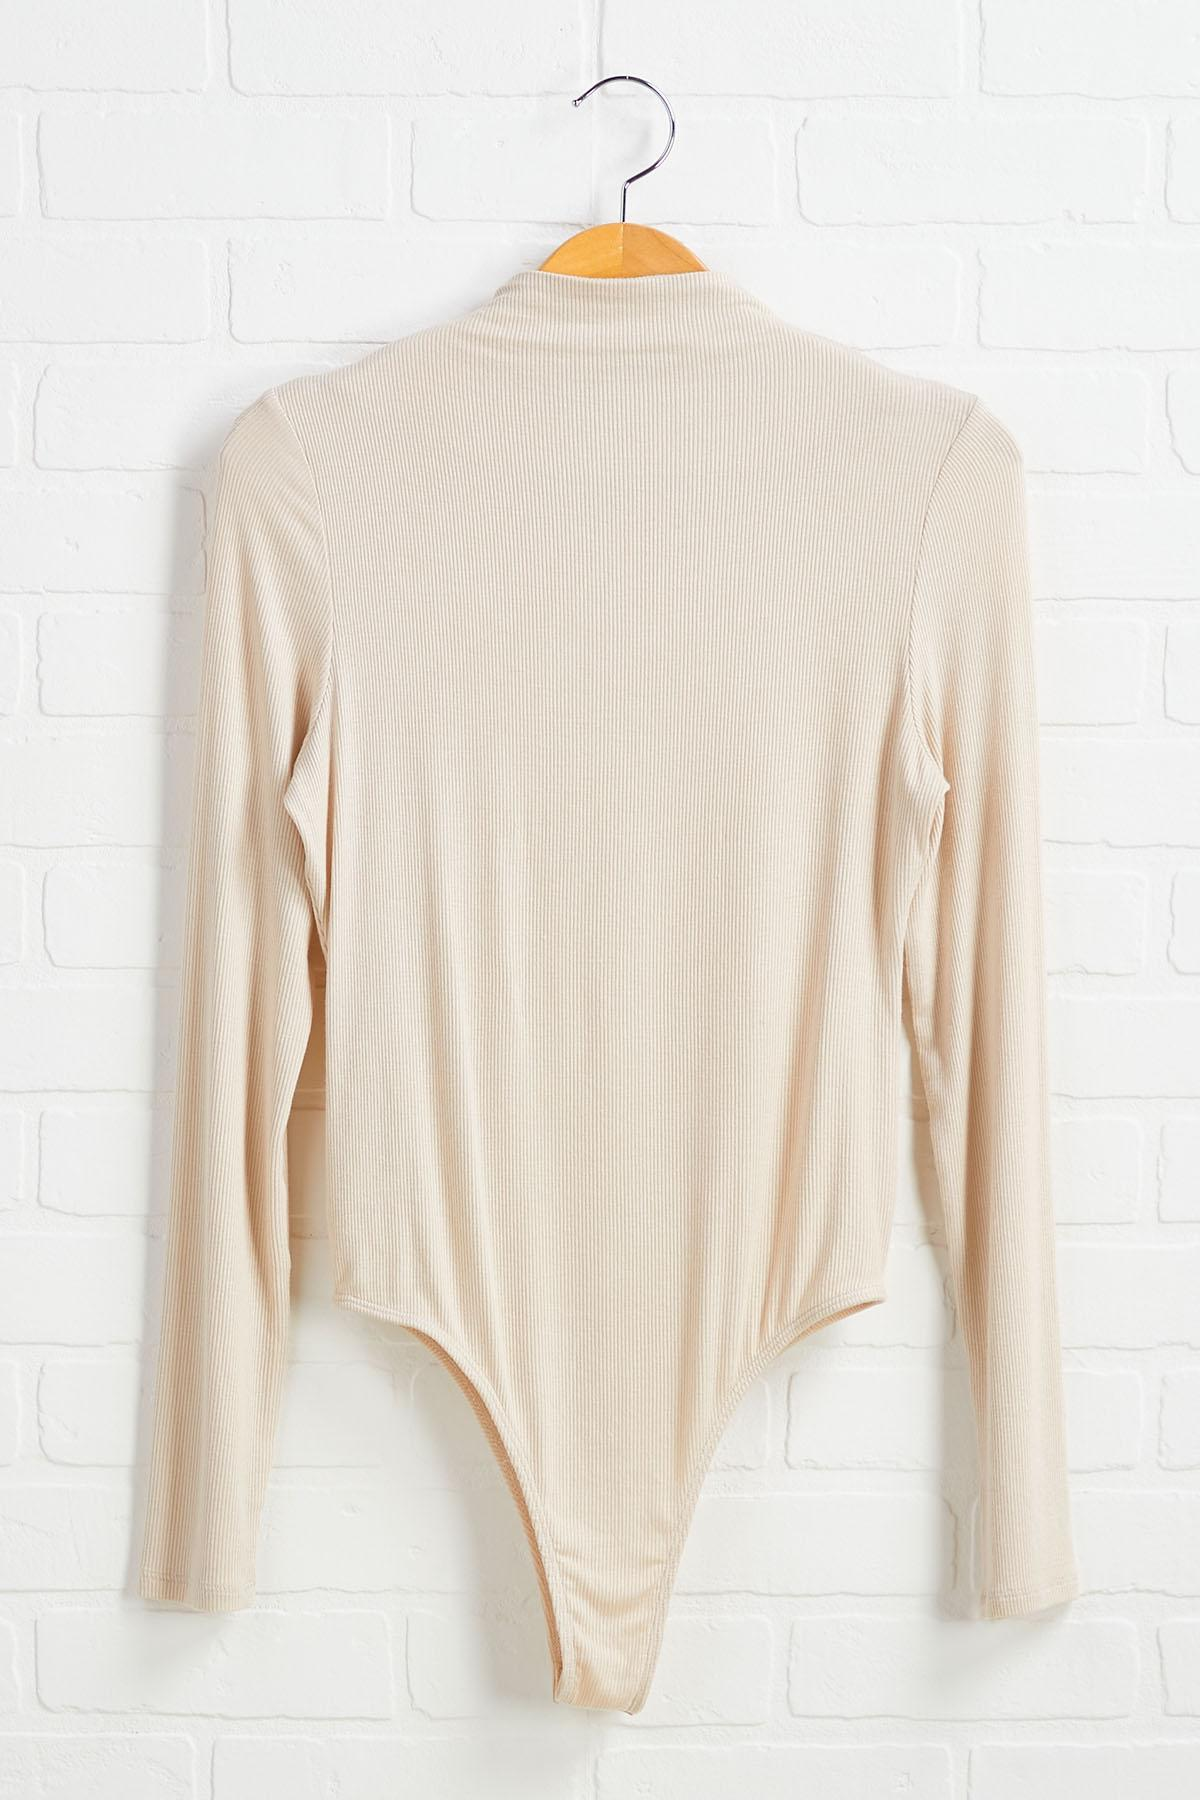 Nothing Nude Going On Bodysuit